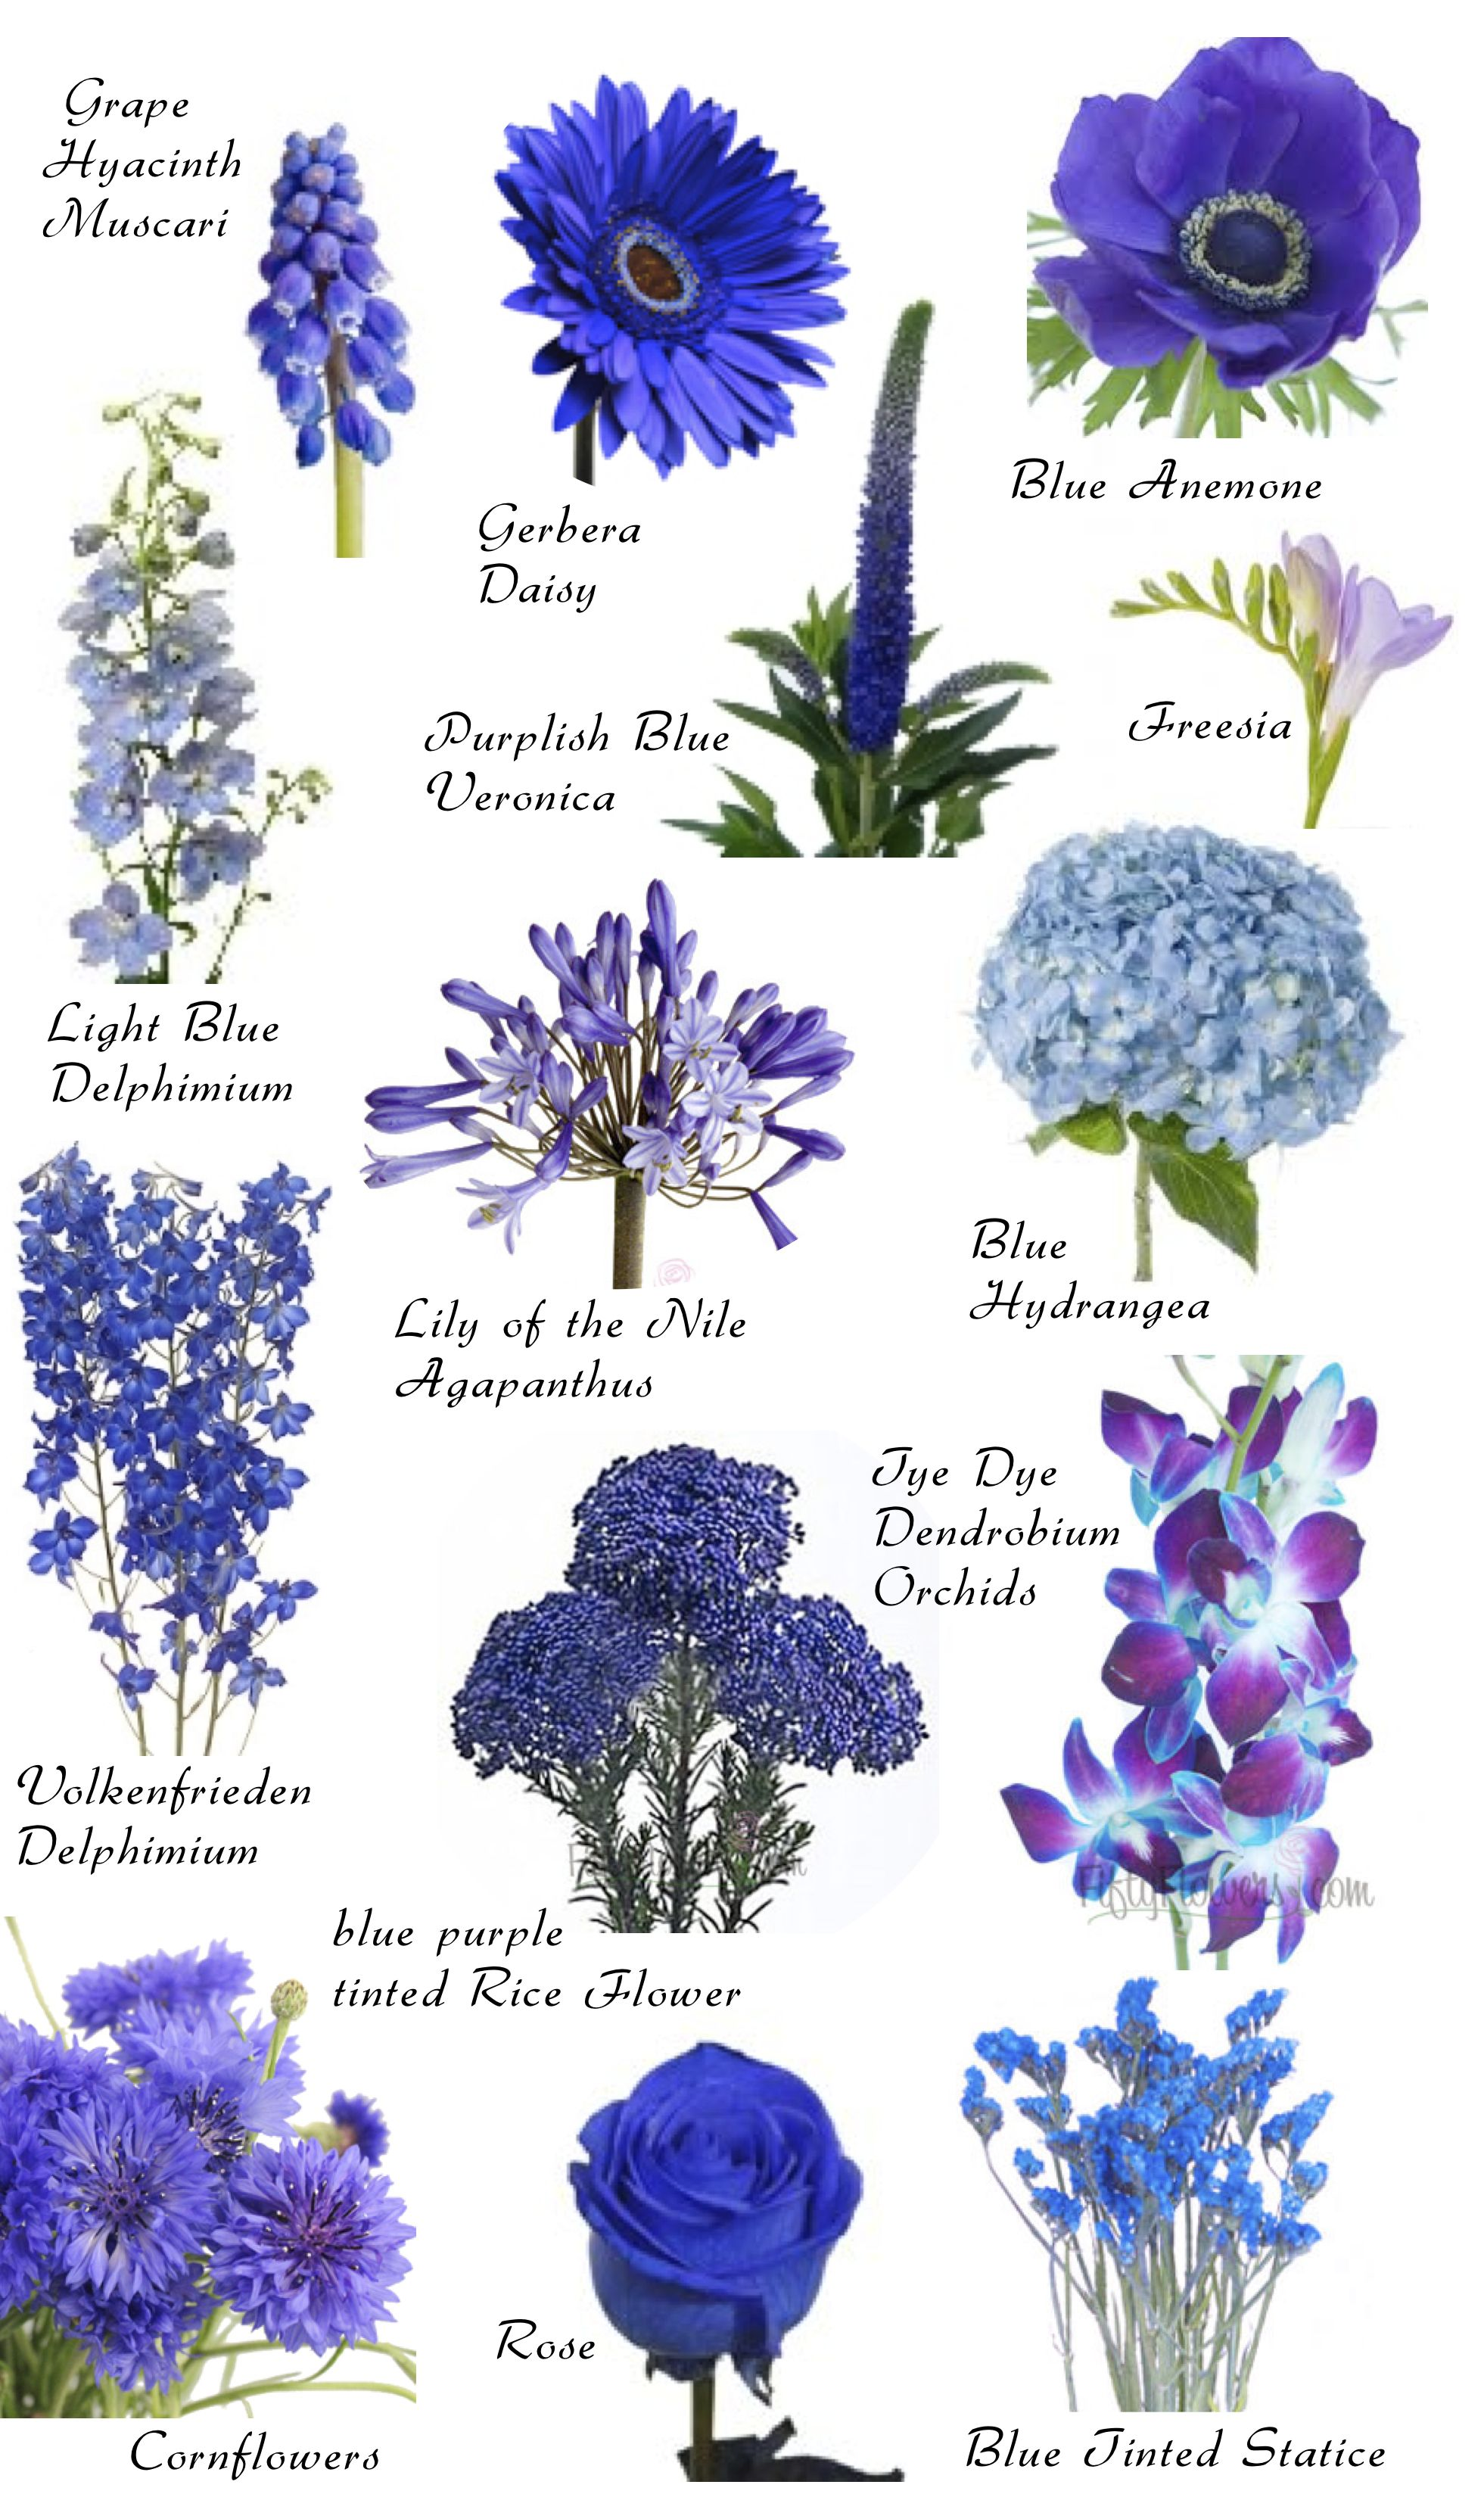 Flower Names By Color Flower Pinterest Flower Flowers And Gardens